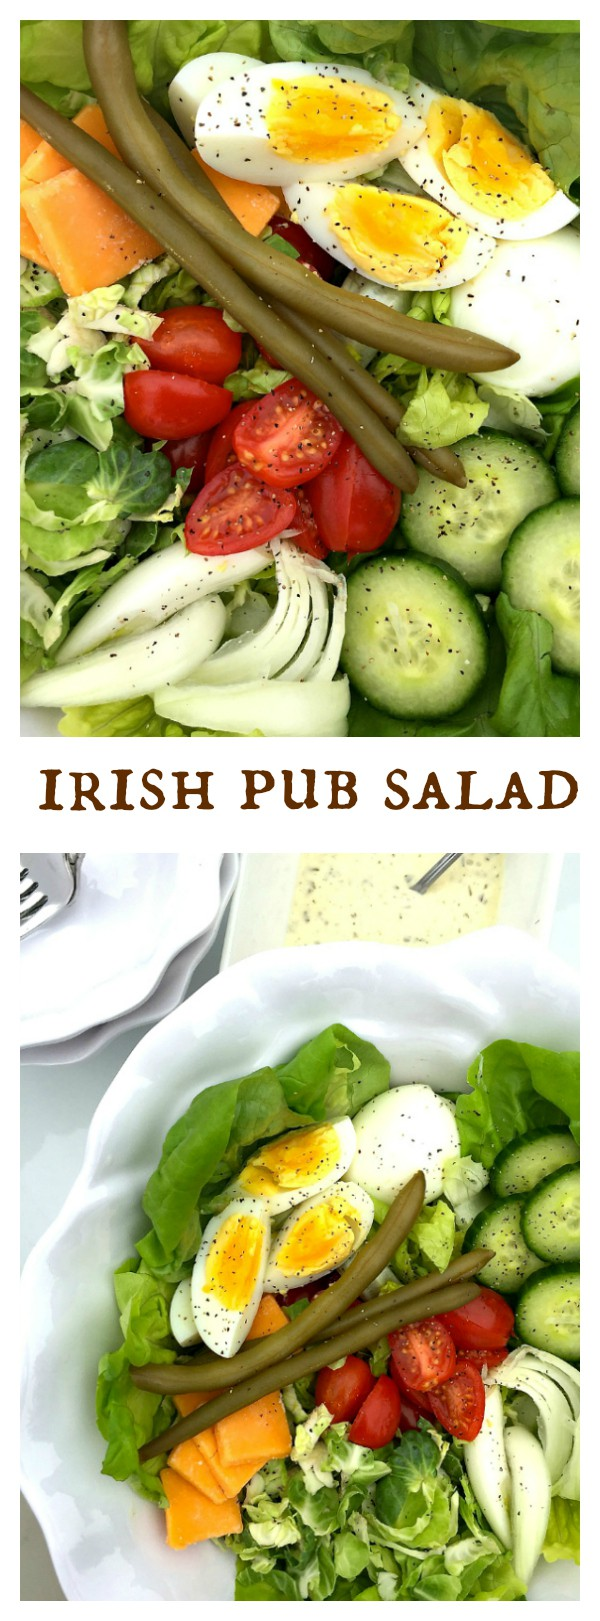 Irish Pub Salad for St. Patrick's Day